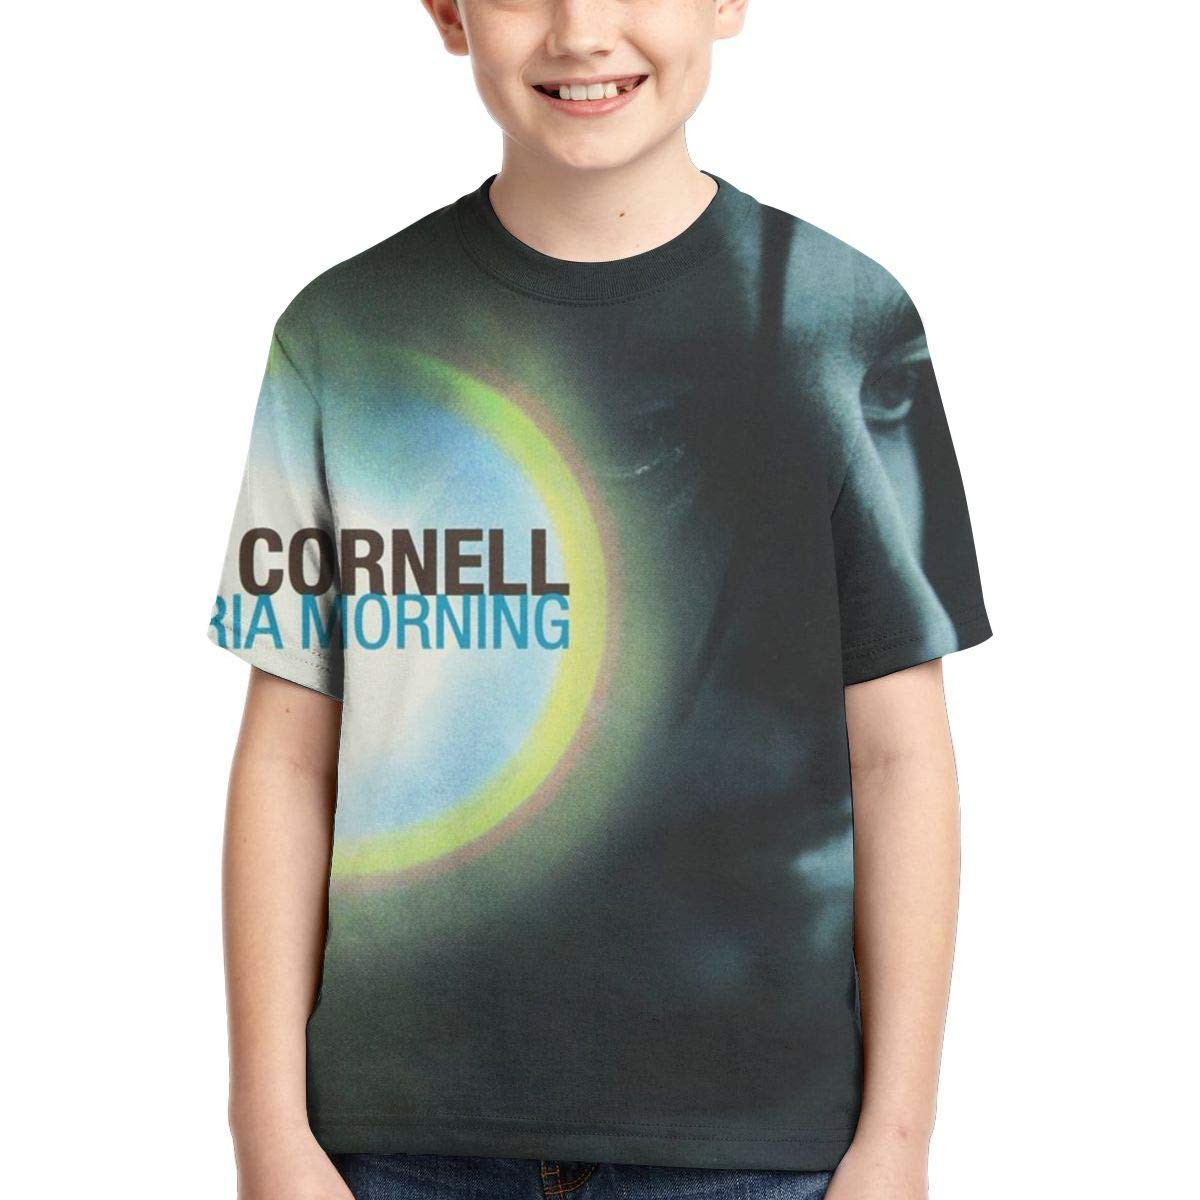 BowersJ Childs Chris Cornell Euphoria Morning Design 3D Printed Short Sleeve T Shirt for Girls /& Boys Black